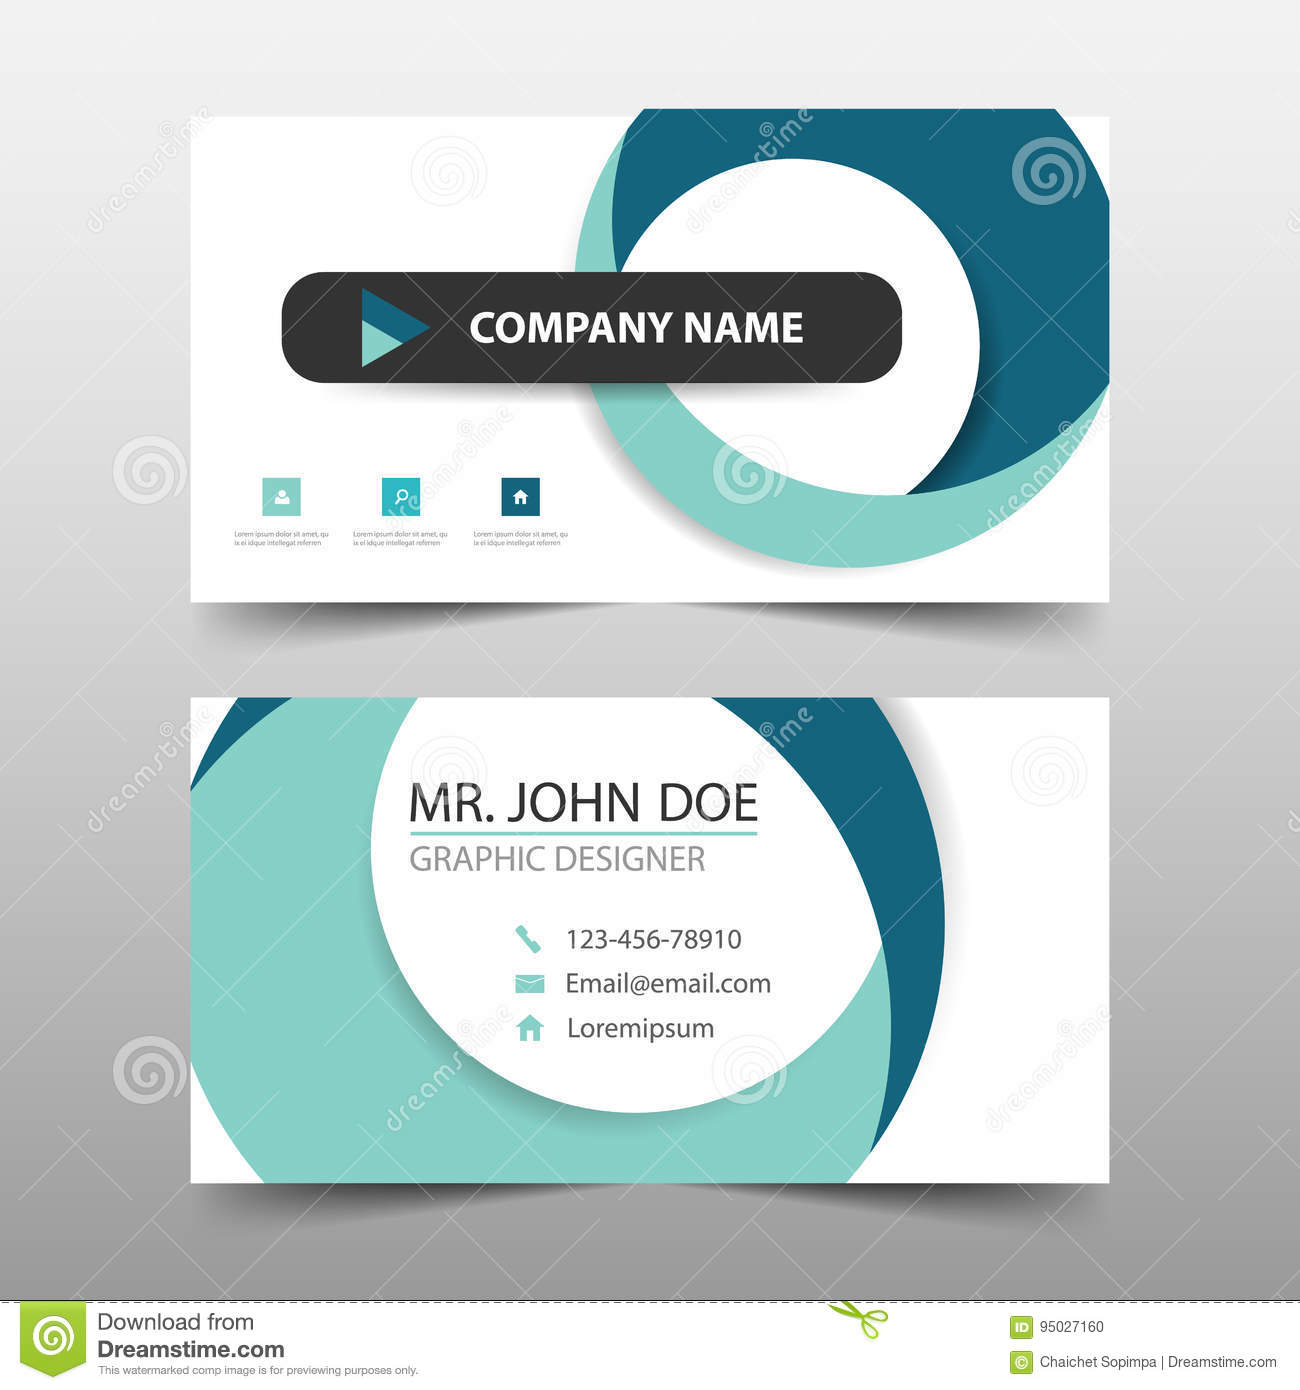 circle business card template images business card template. Black Bedroom Furniture Sets. Home Design Ideas